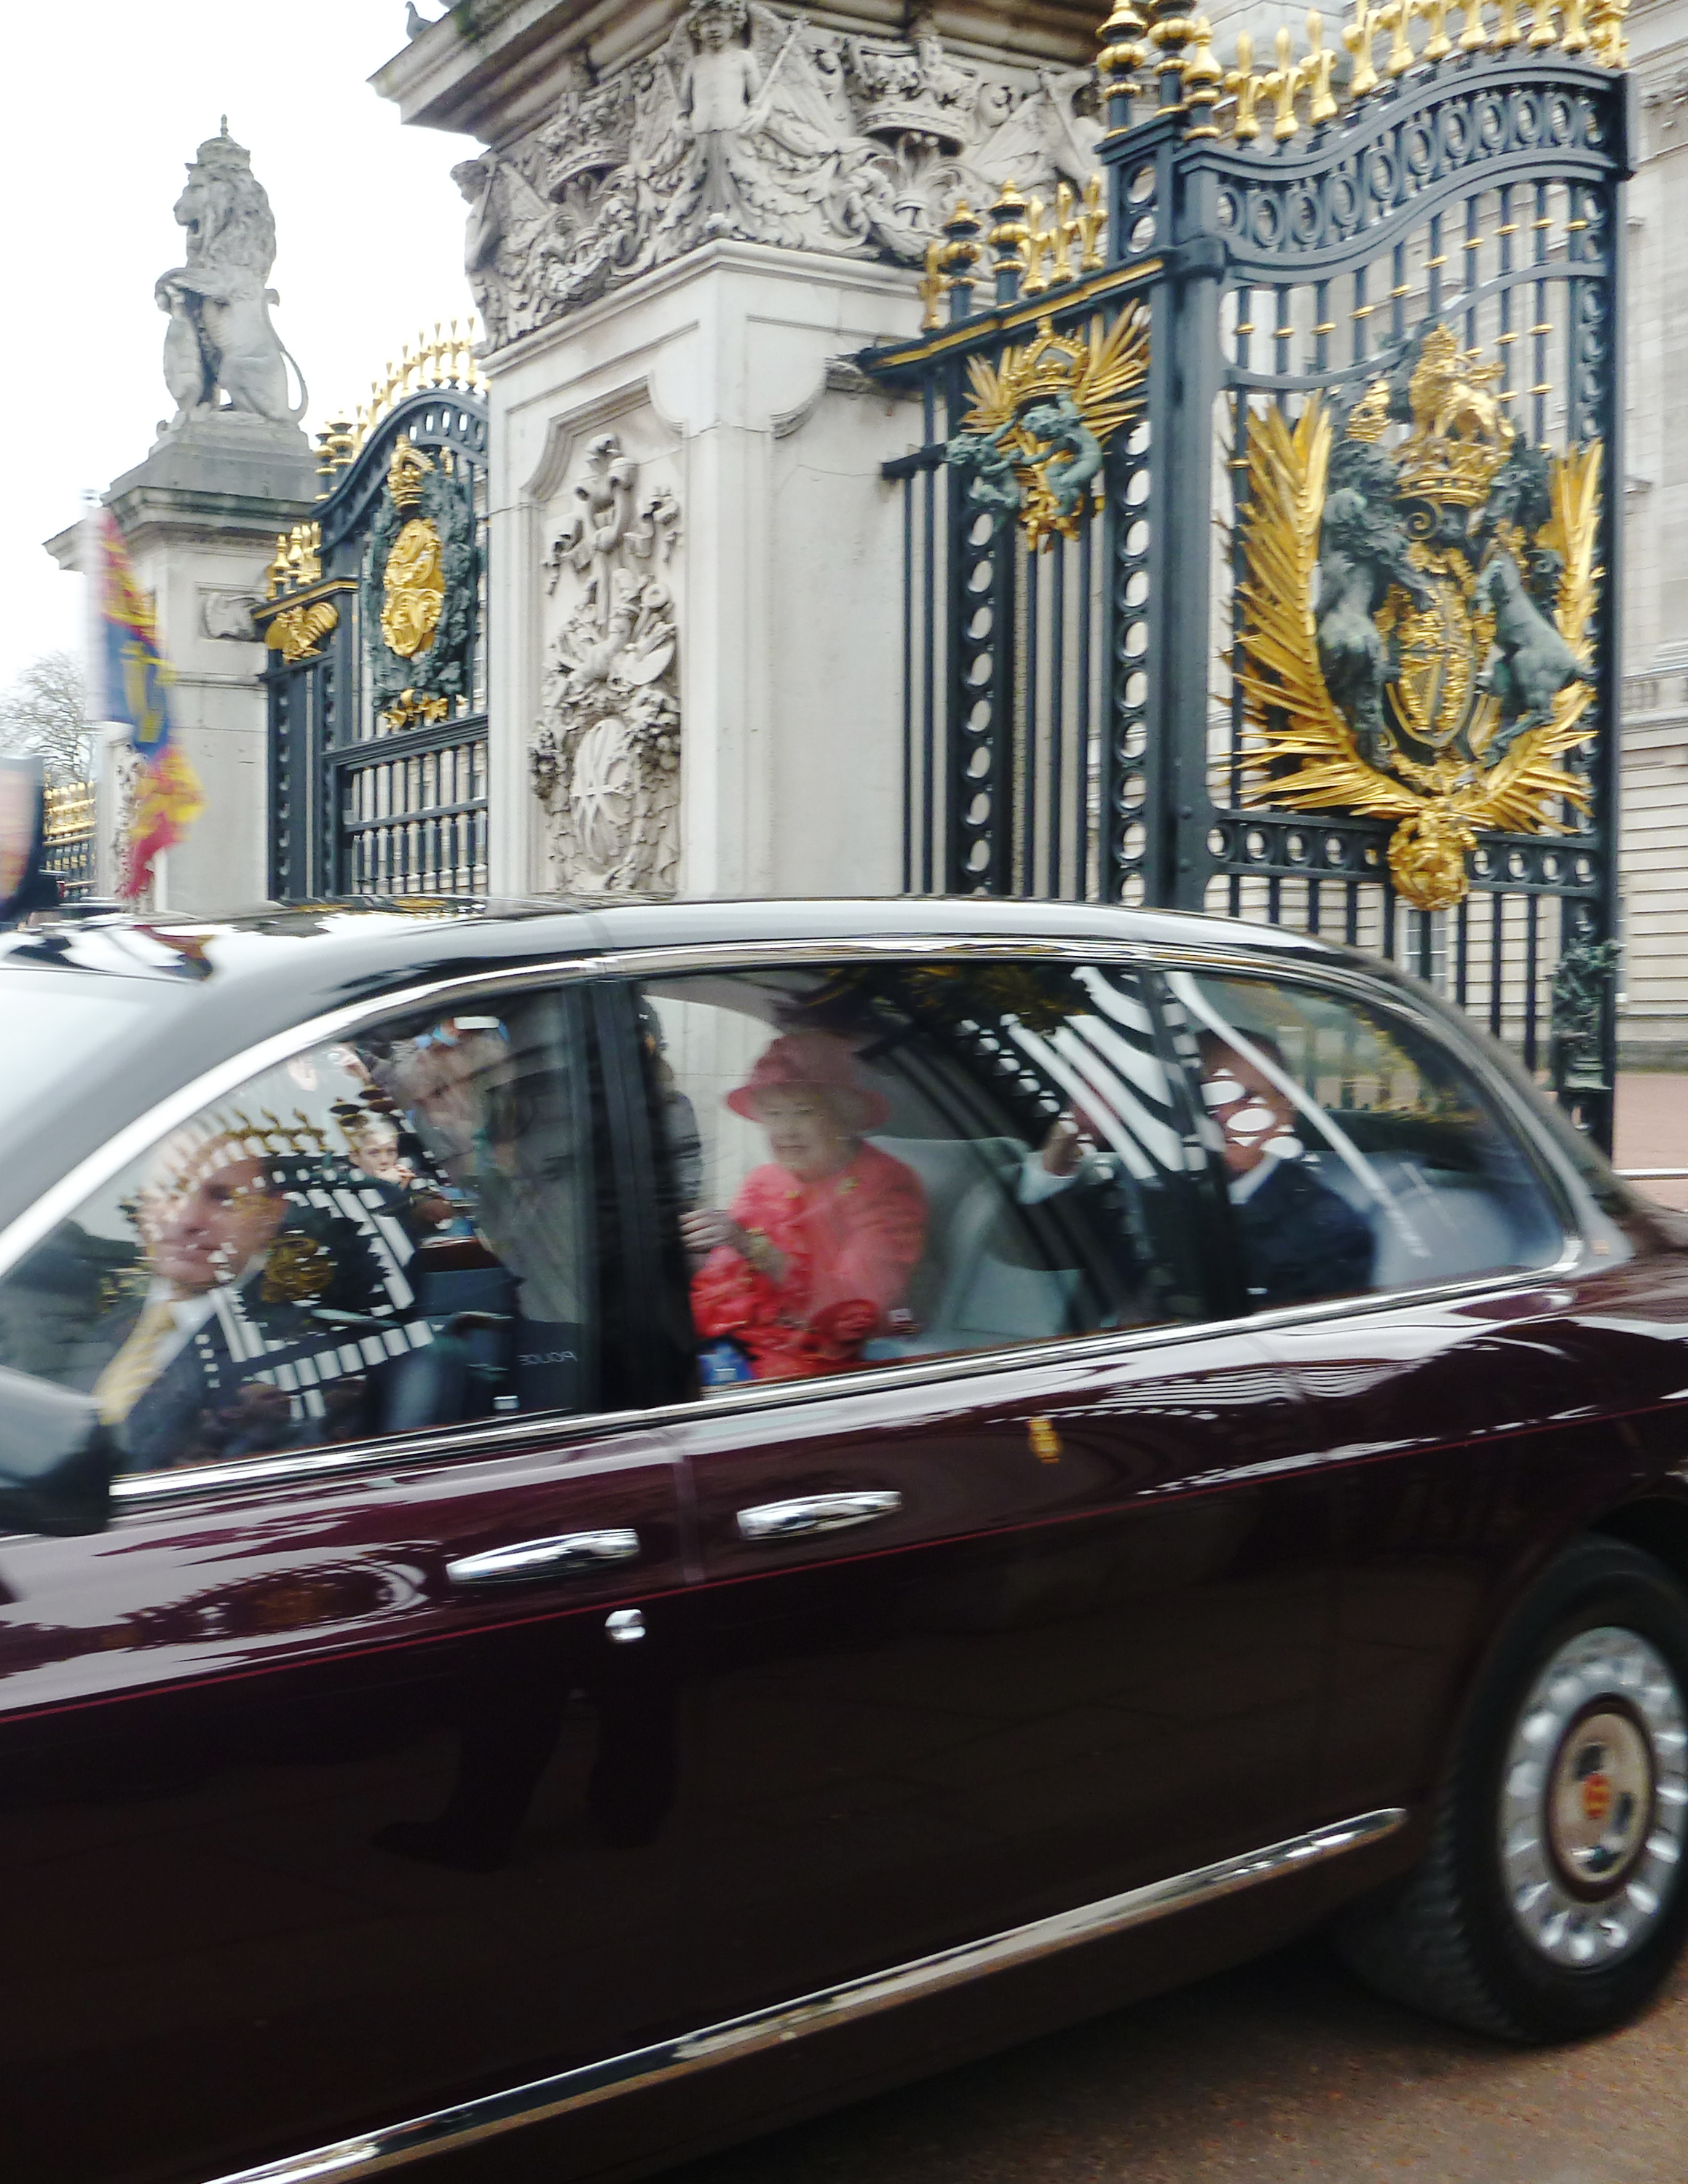 Buckingham Palace: The Queen of England